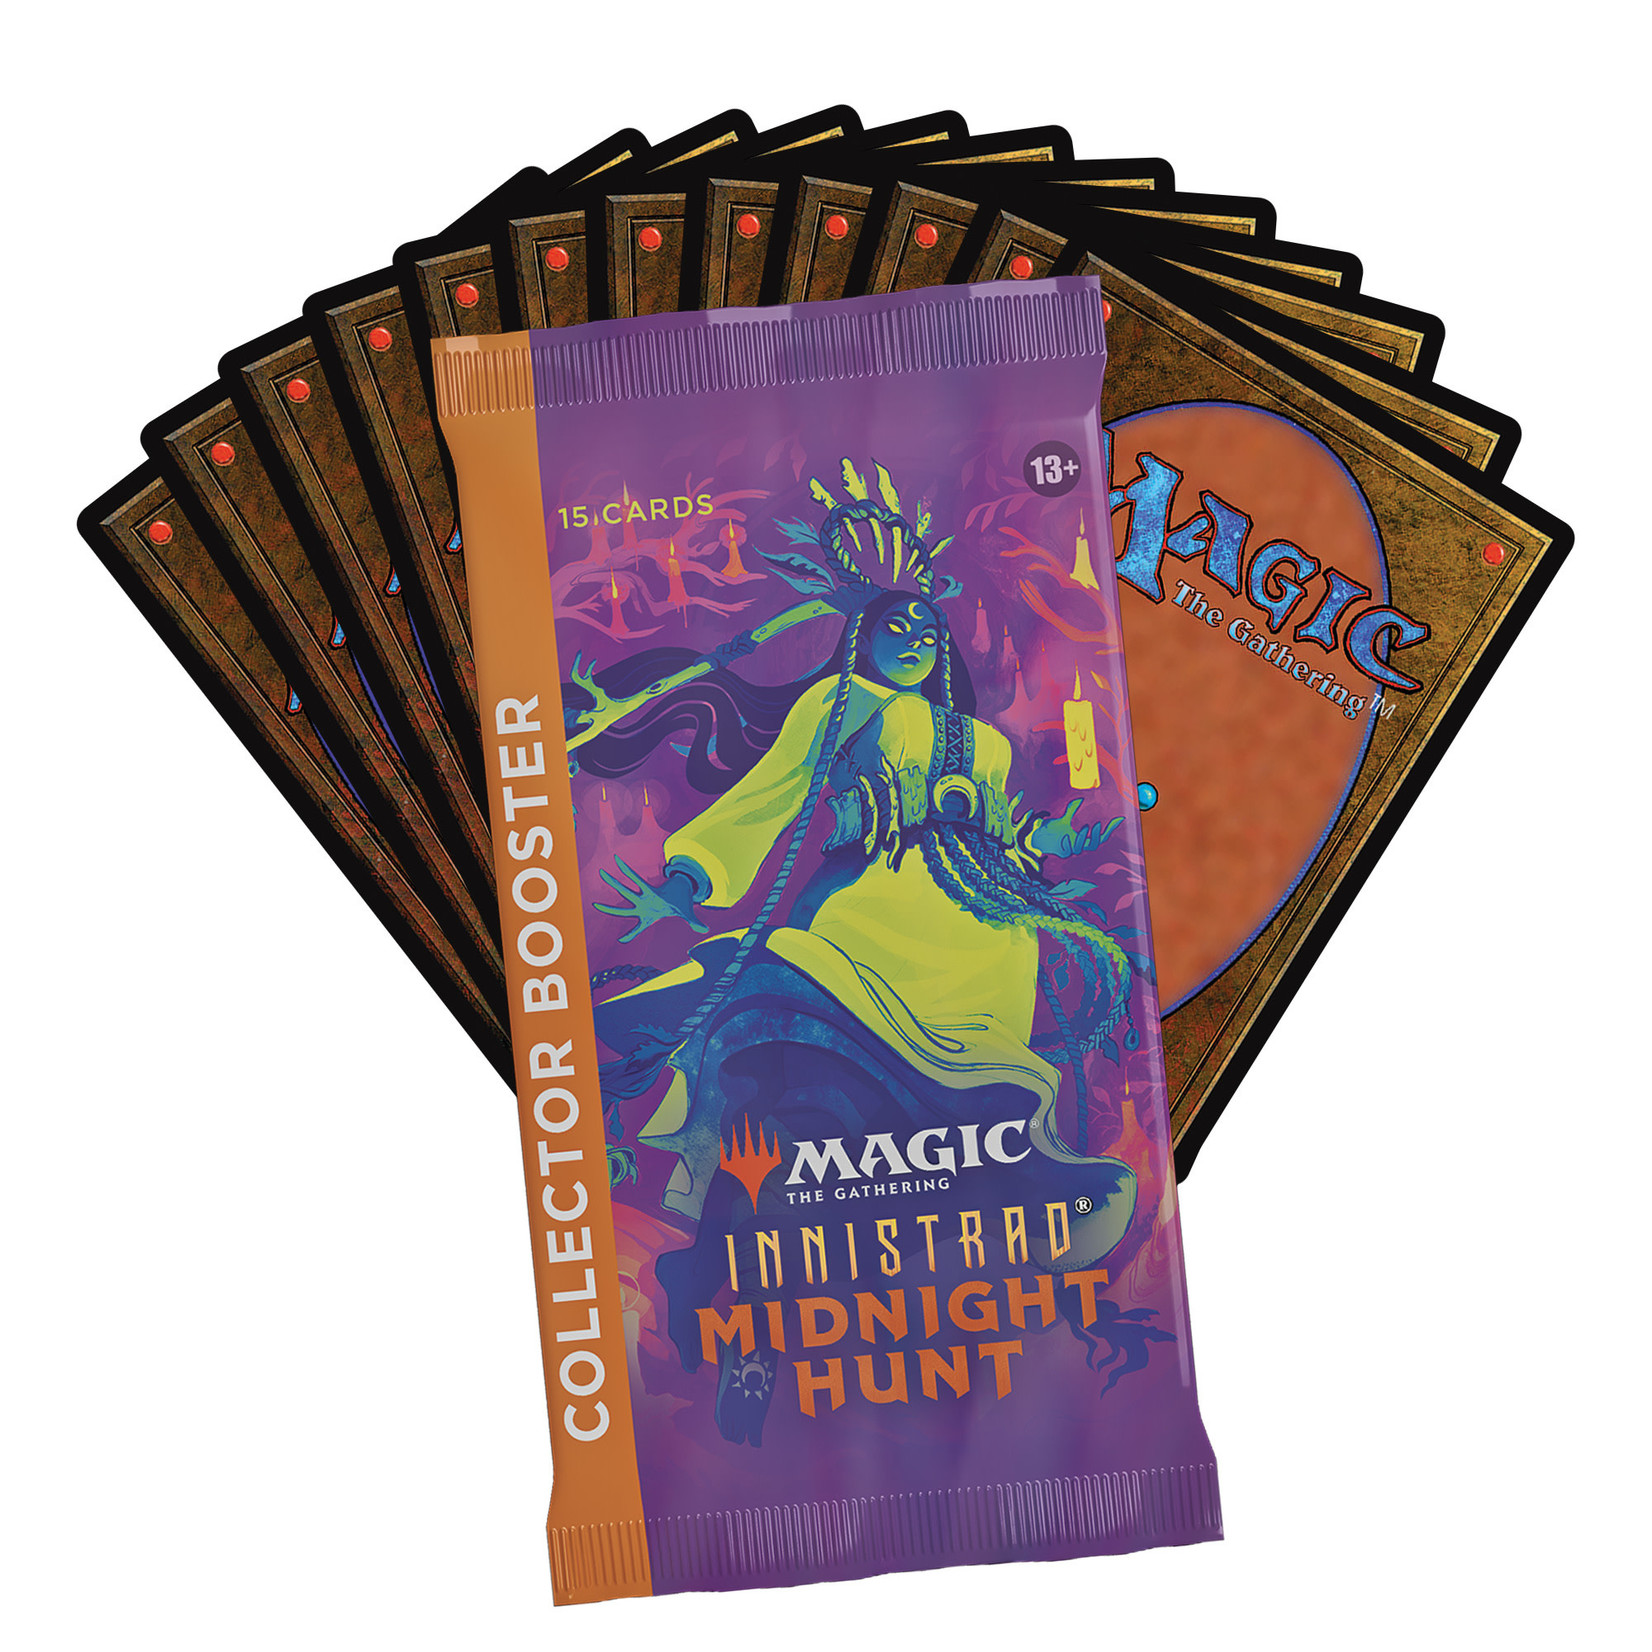 Magic: The Gathering Magic: The Gathering - Innistrad: Midnight Hunt Collector Booster Box